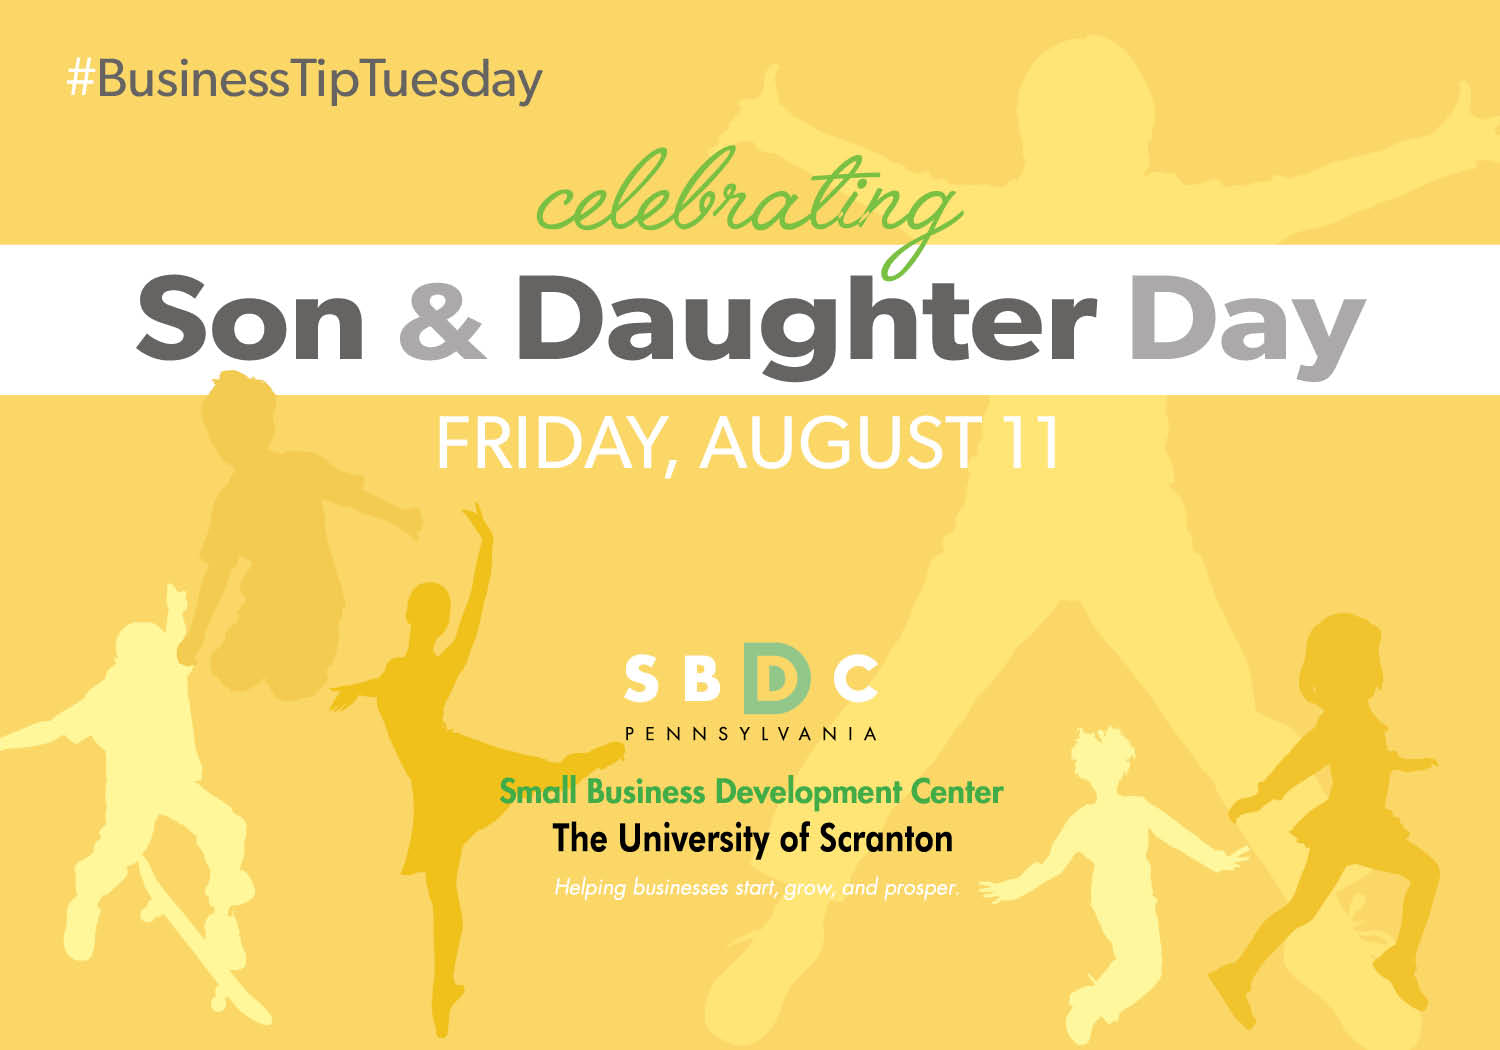 #BusinessTipTuesday – Son & Daughter Day